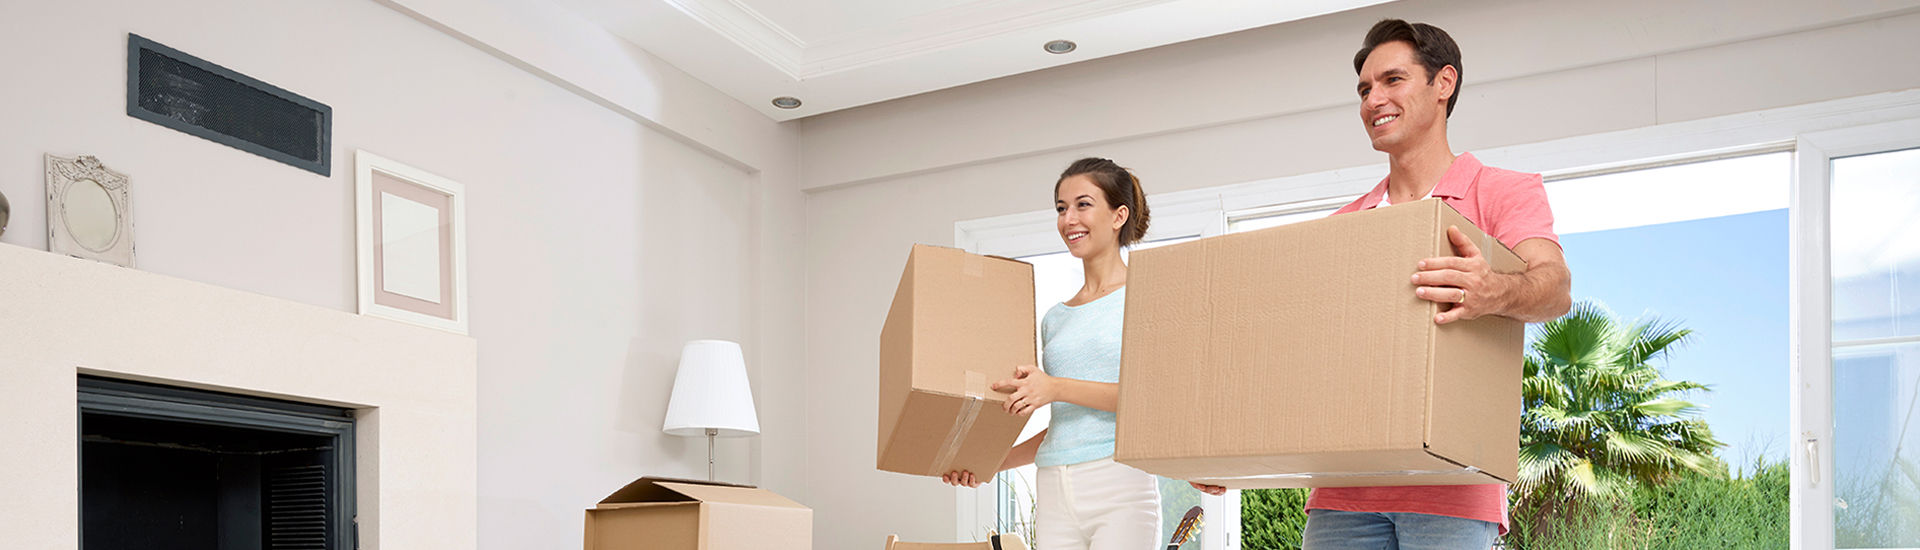 Packers and Movers in Nashik | Home Shifting Services Nashik